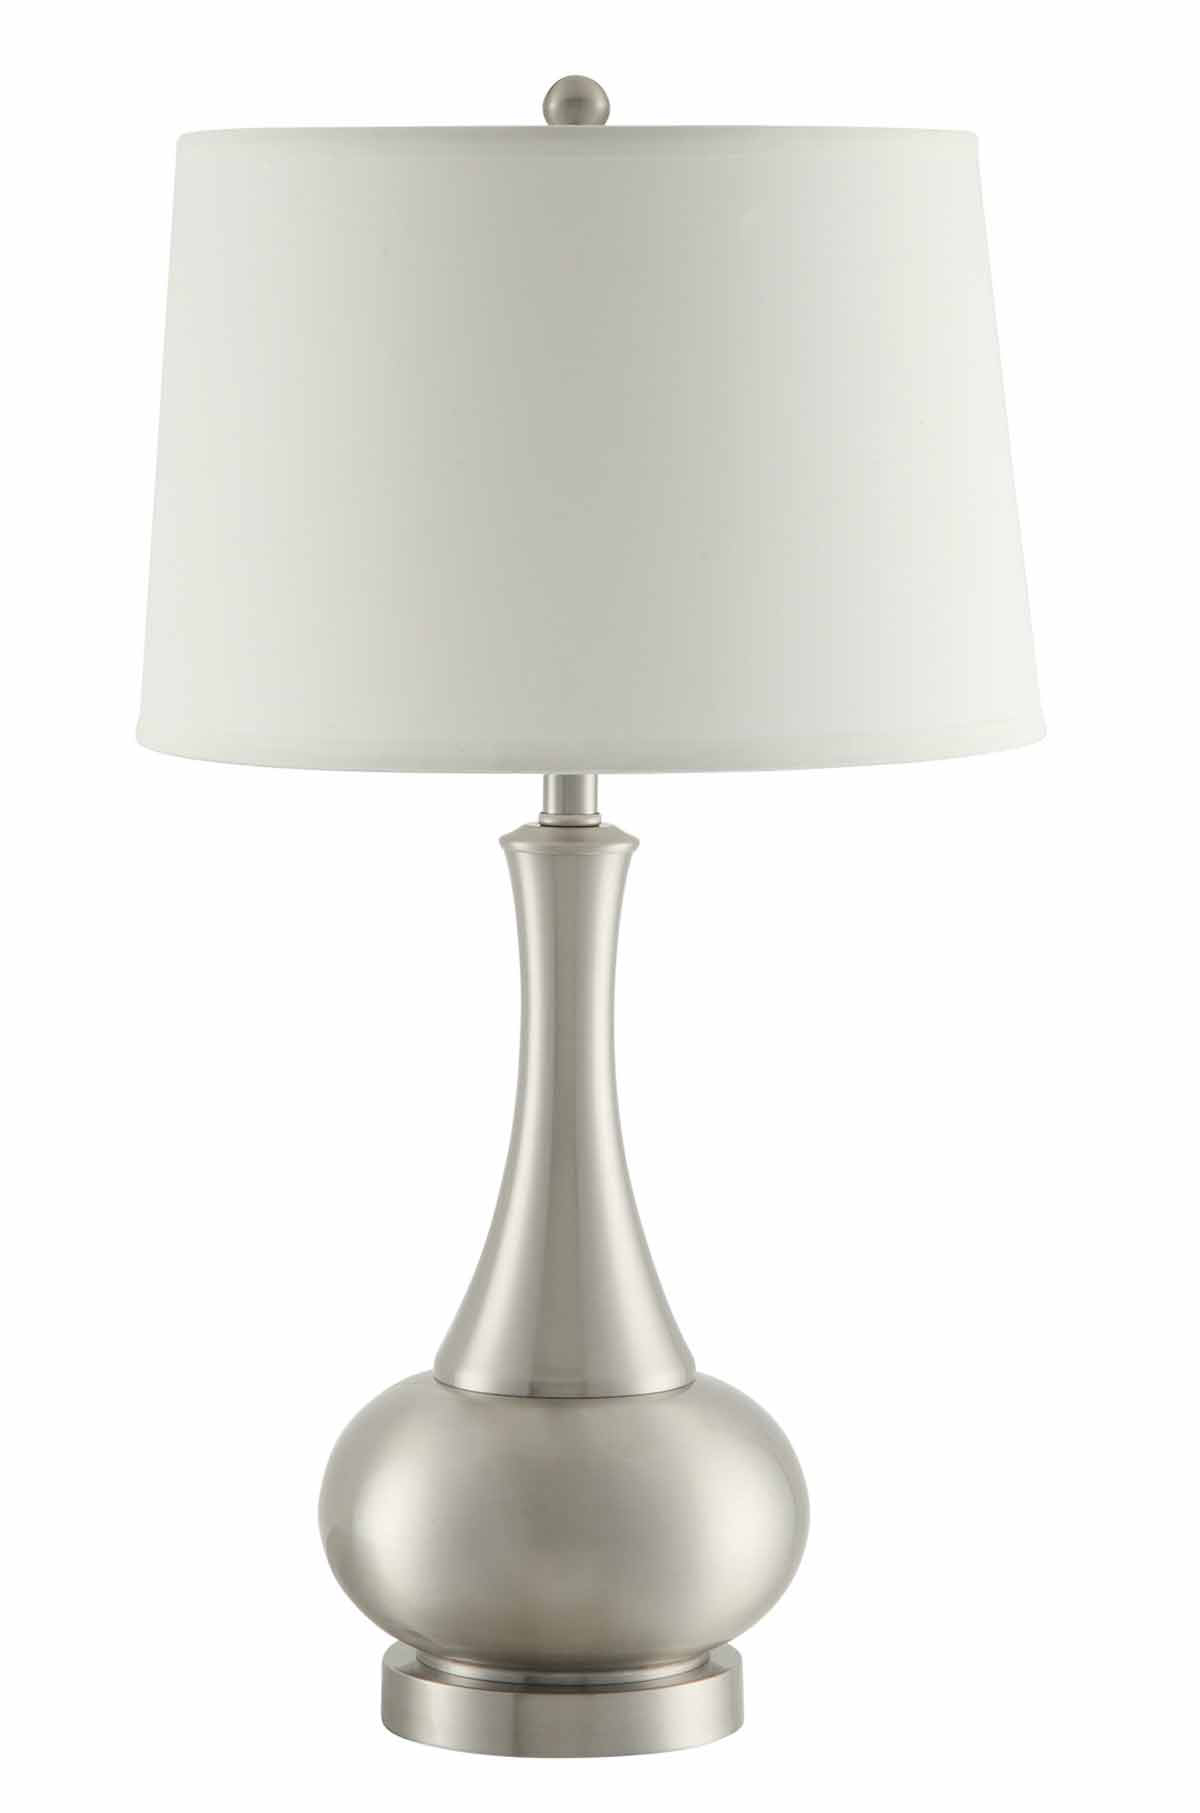 Coaster 901545 Table Lamp - White/Stain Nickel